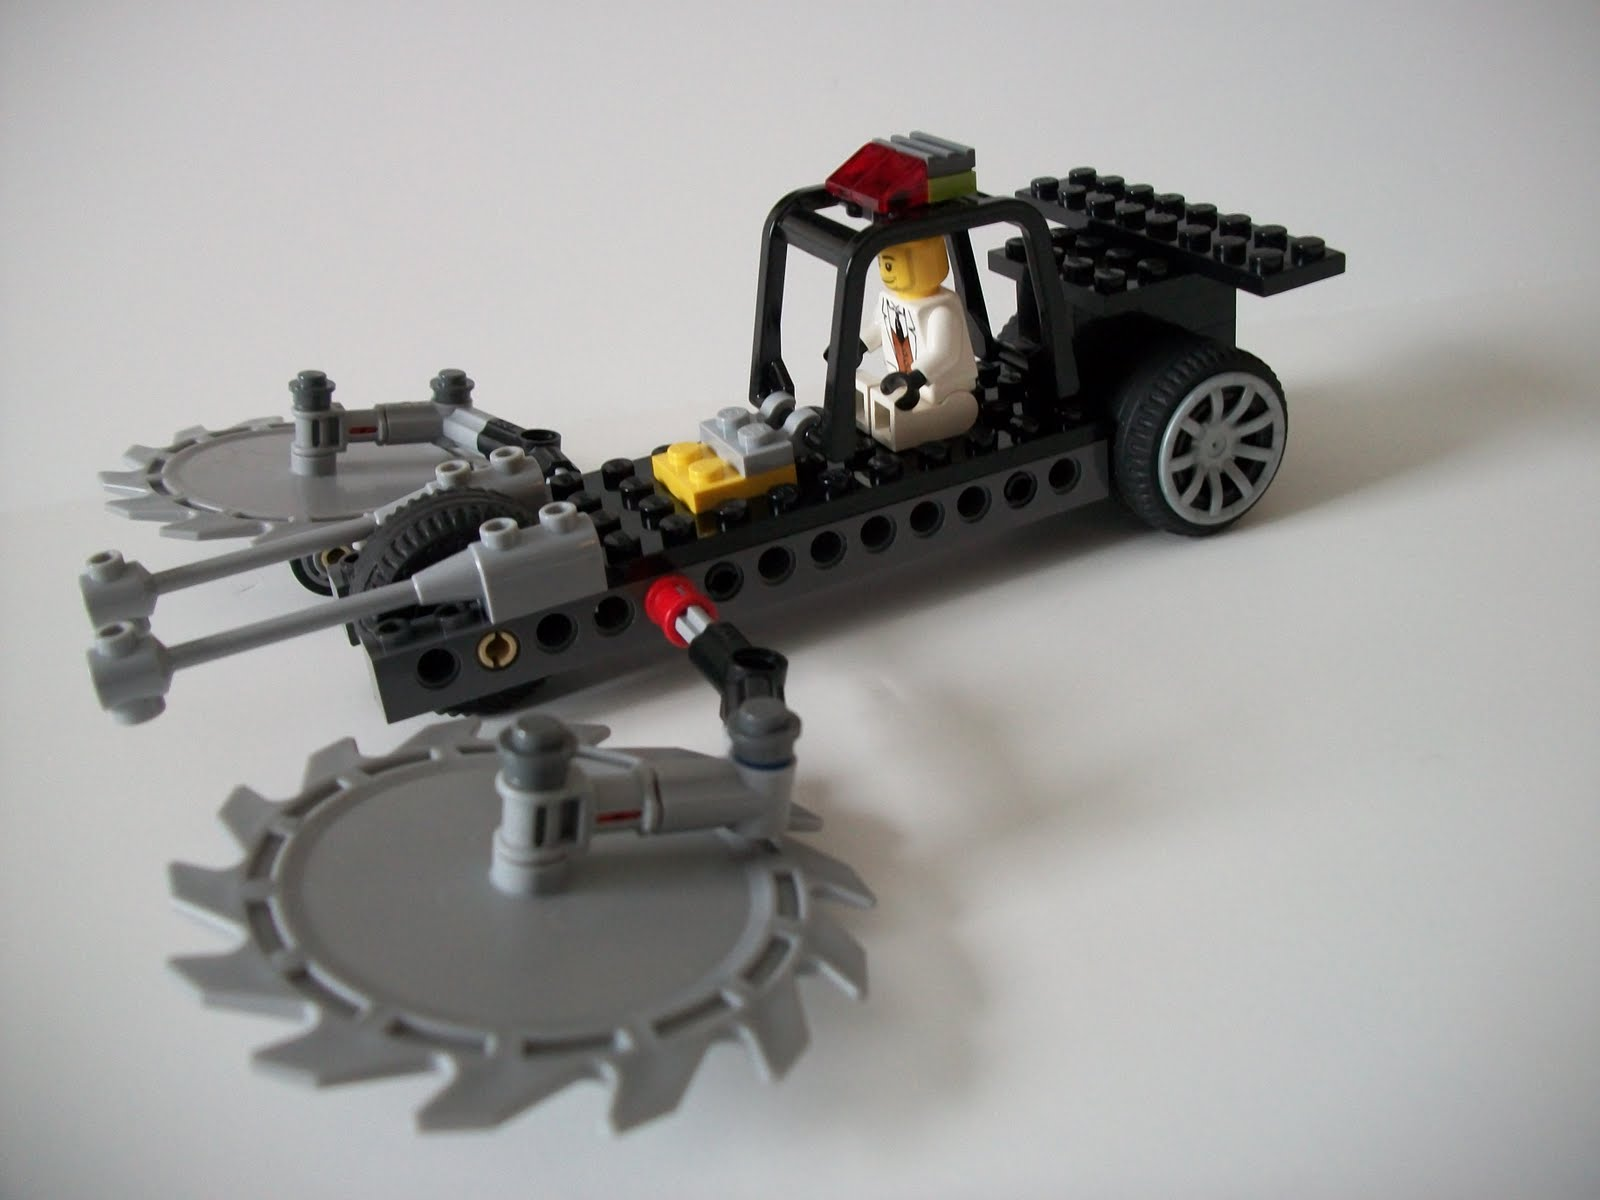 LEGO Saw - Bing images